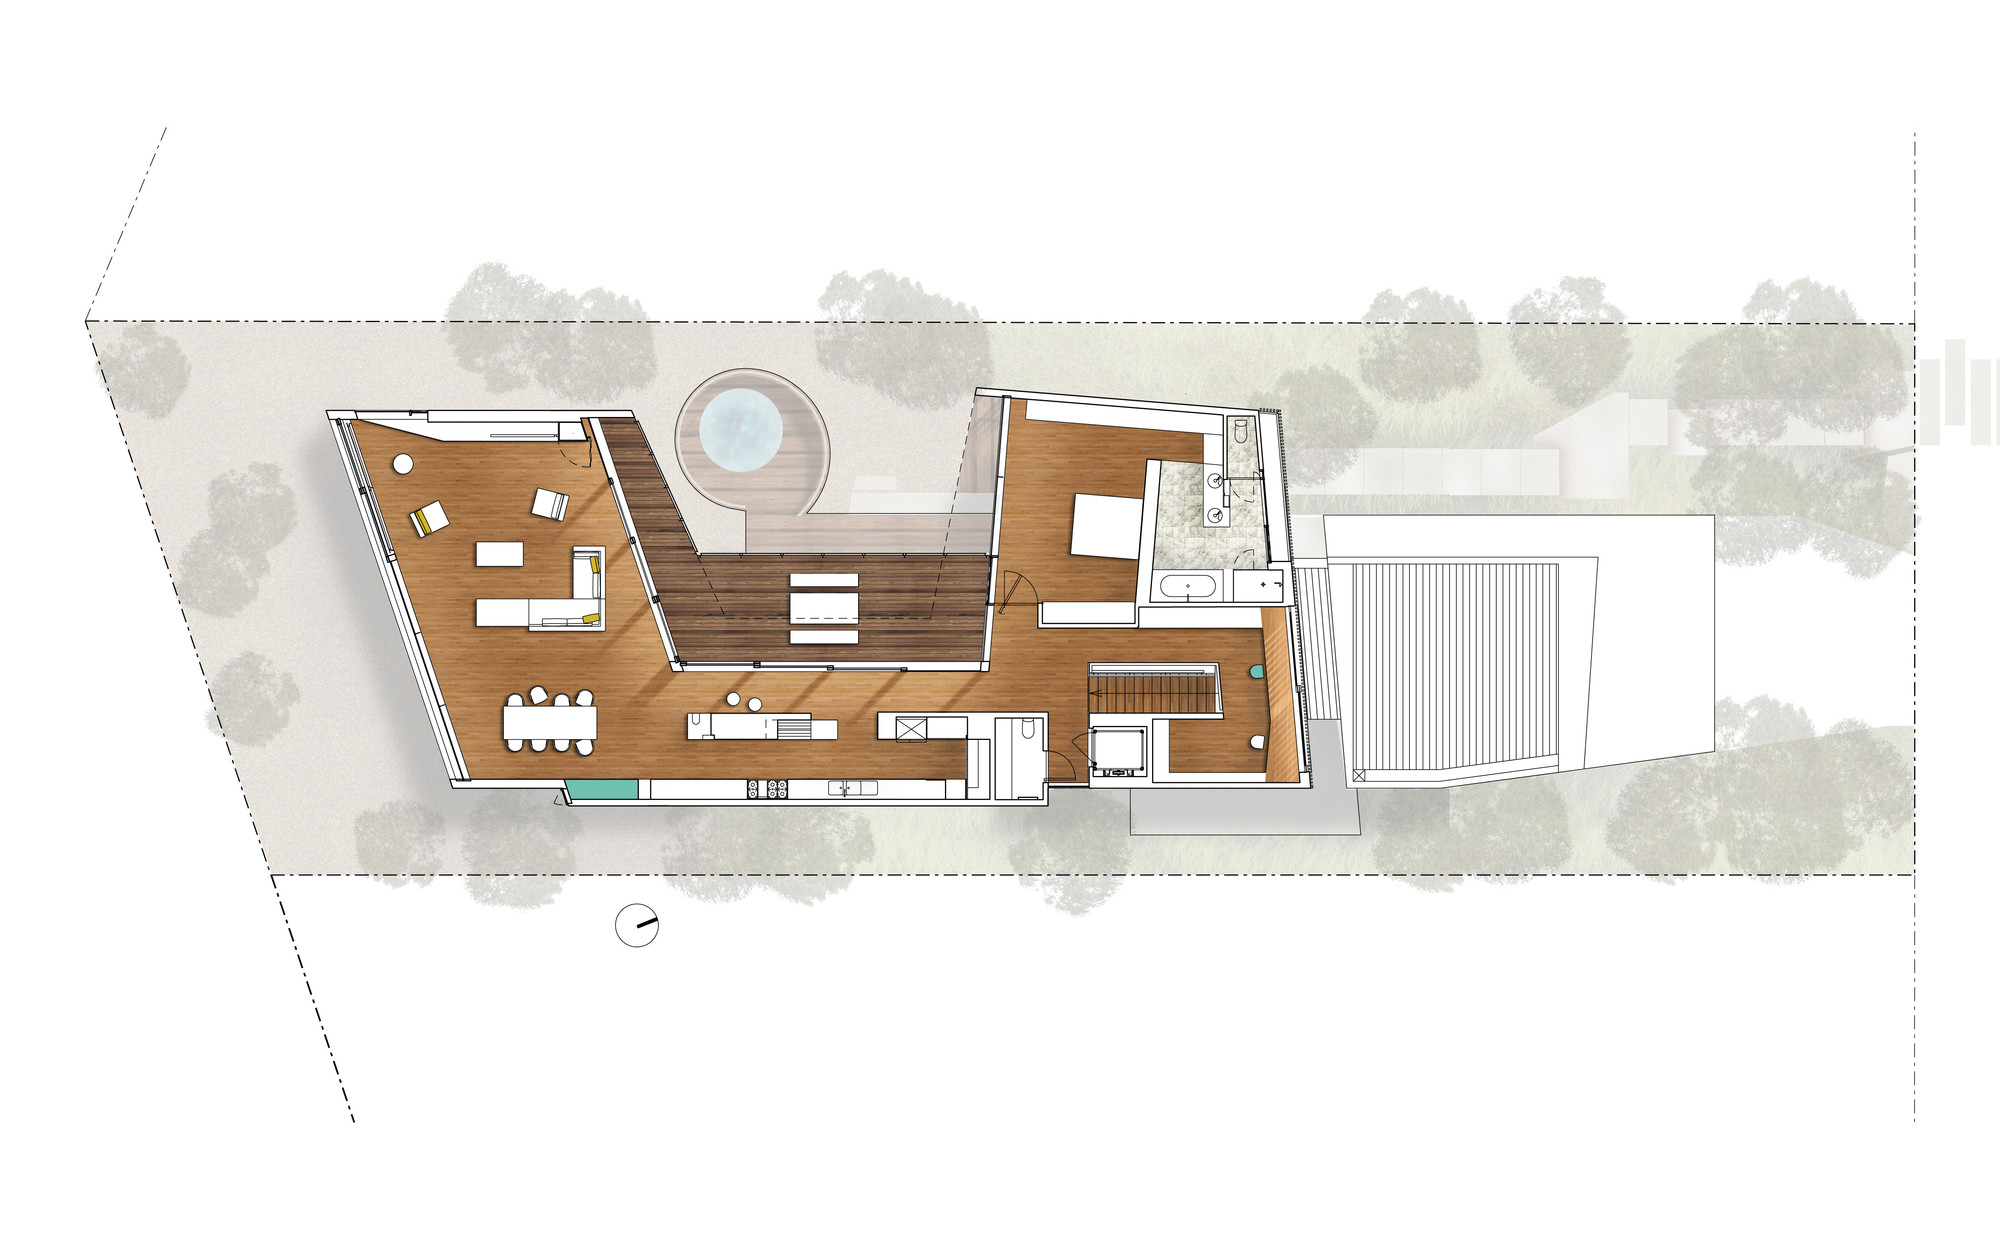 queenscliff residence john wardle architects archdaily first floor plan